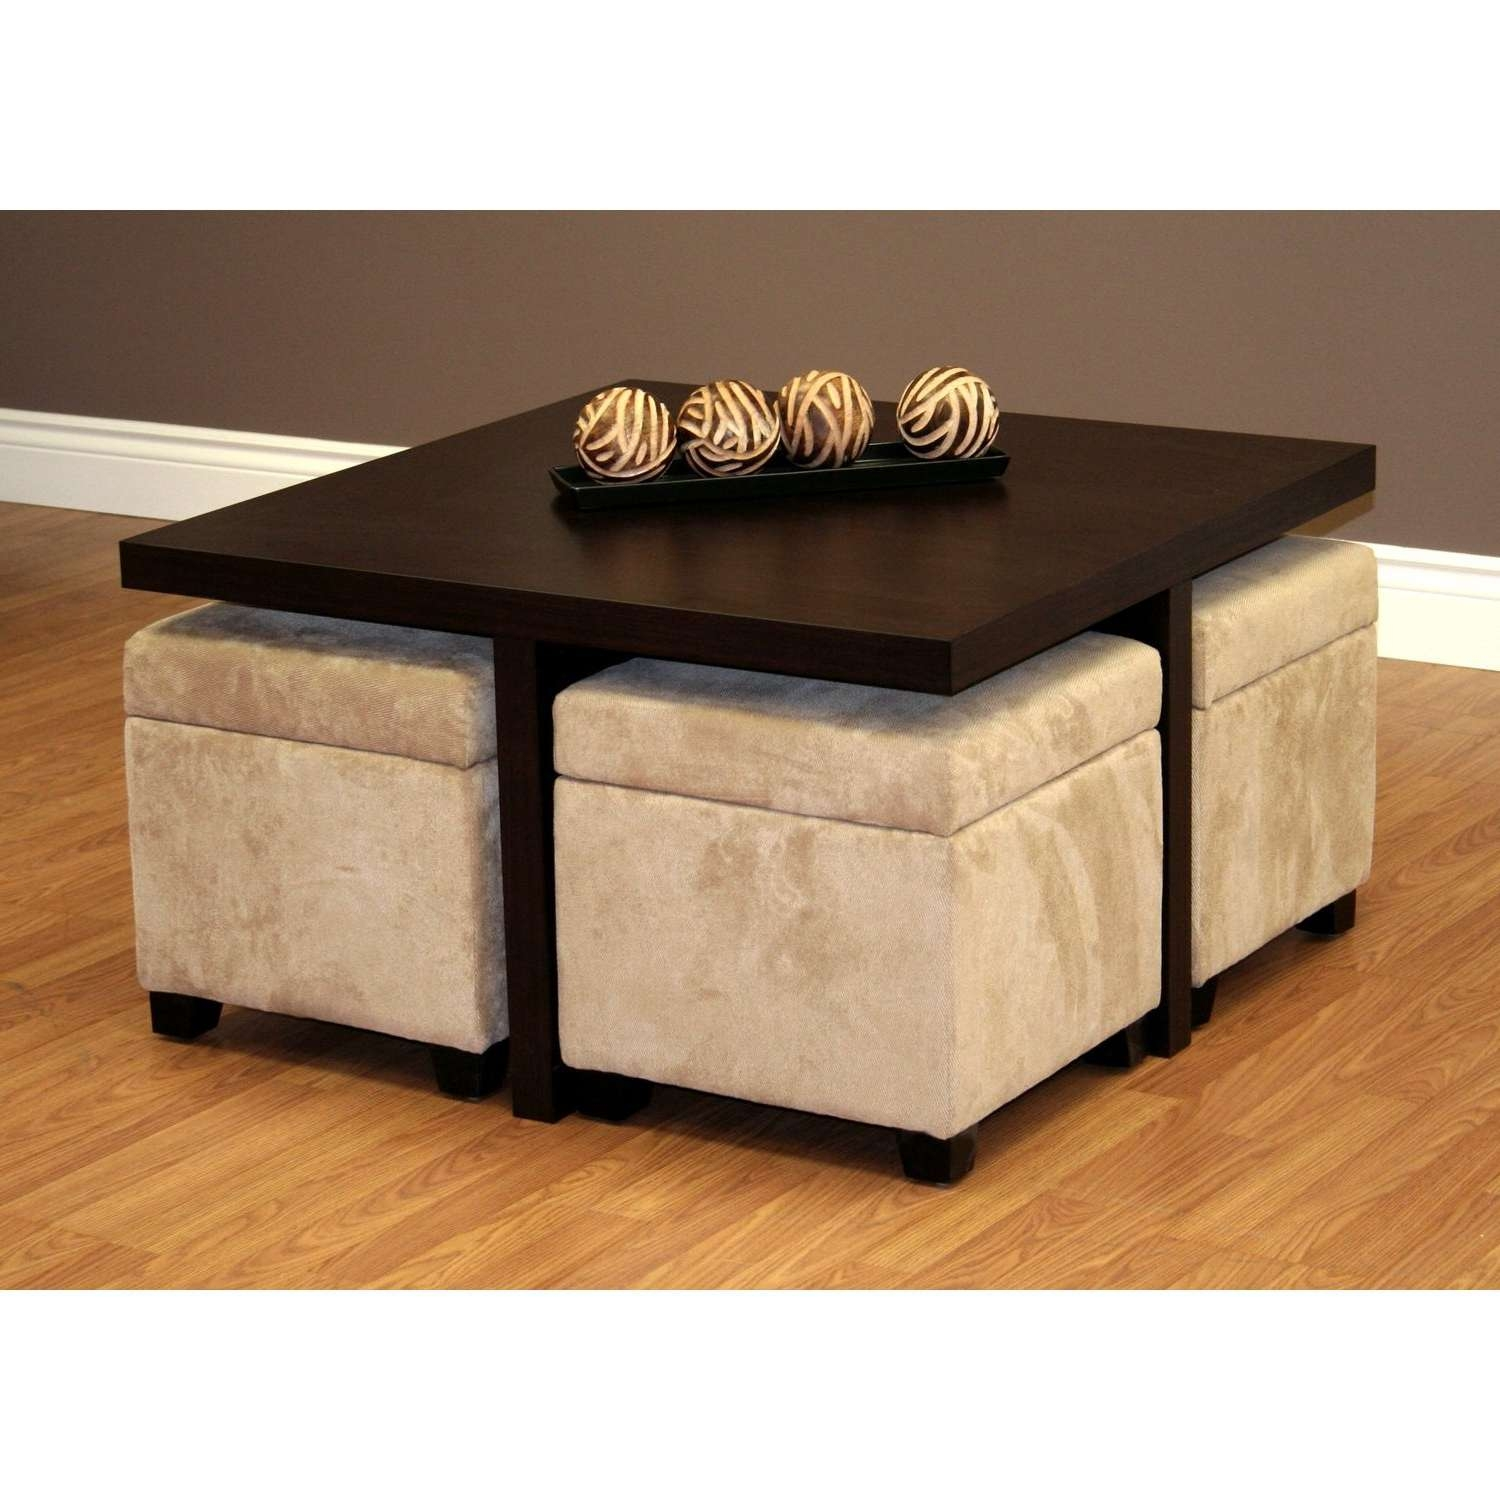 2018 Square Coffee Tables With Storage Cubes Within Calm Baby Room Minimalist Plus Stackable One Door Storage Cube Wth (View 5 of 20)